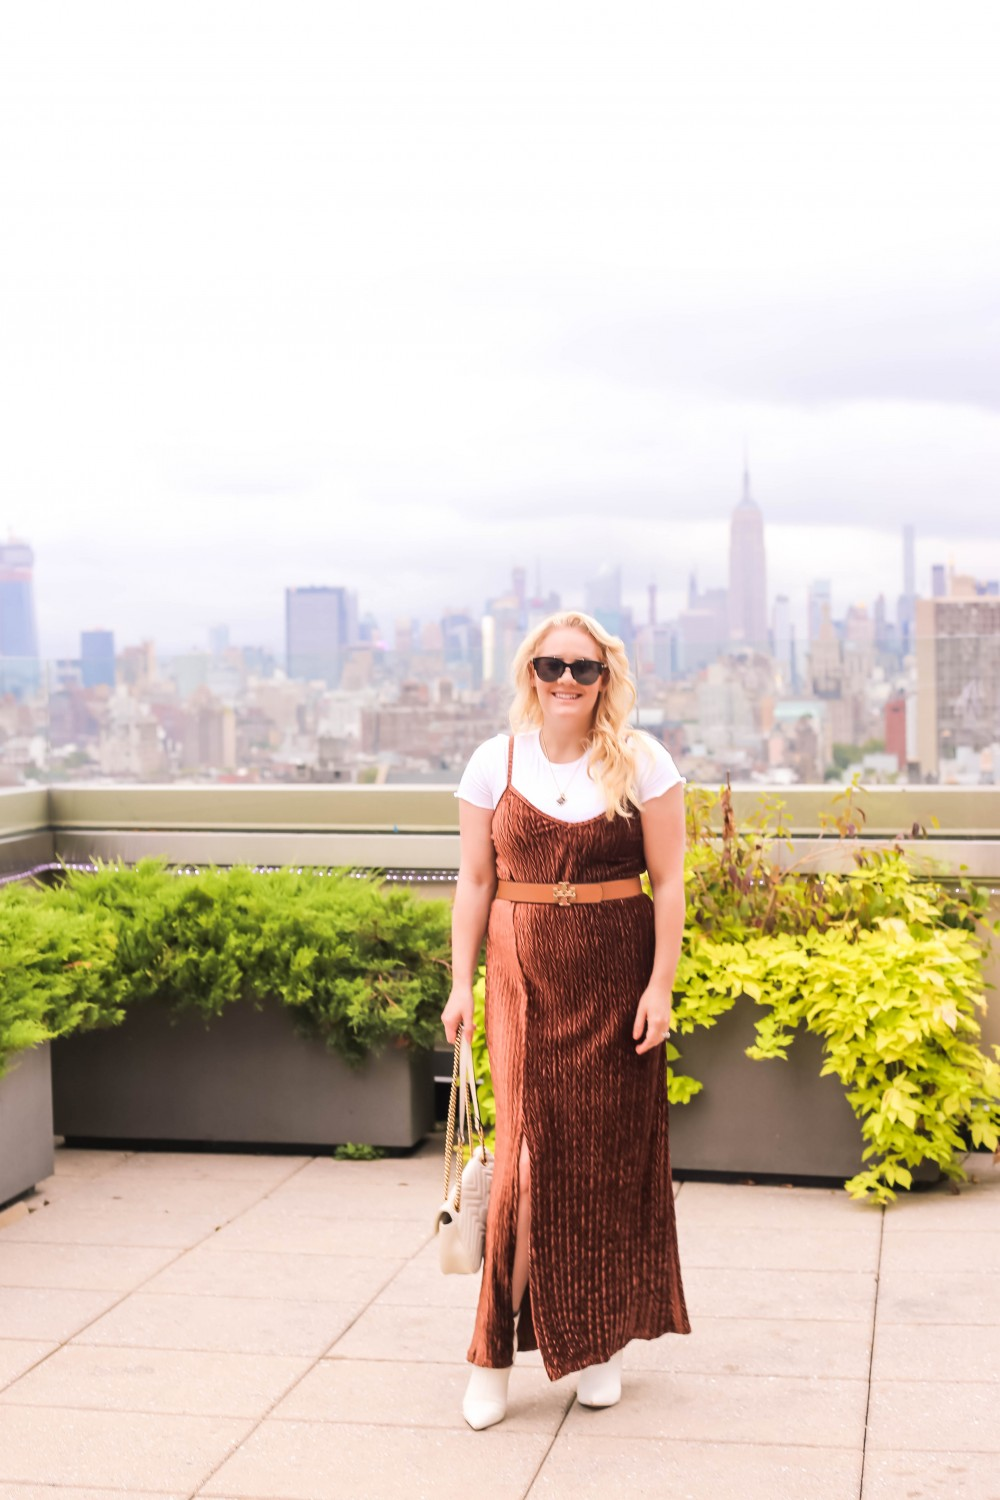 How To Extend Your Summer Clothes Into Fall, New York, New York City Skyline, Outfit Inspiration, Styling Tips and Tricks, Have Need Want